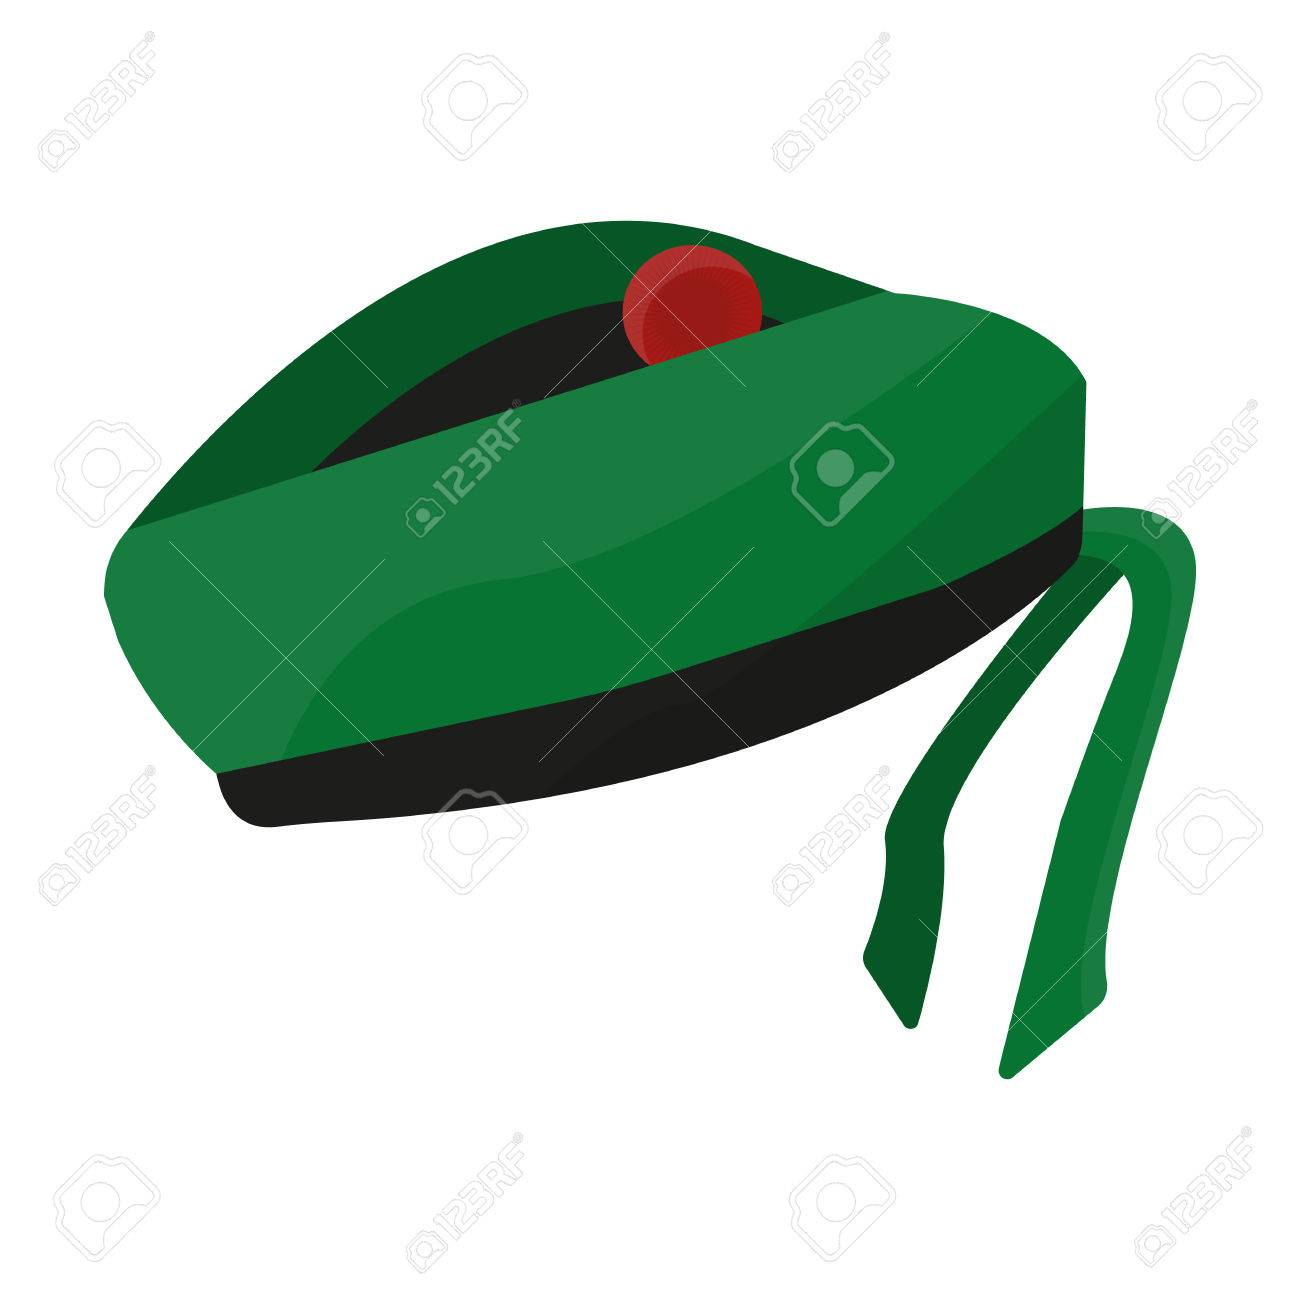 542d675f1f4cb Scottish National traditional cap or beret with bubo and green checkered  pattern in red colors.